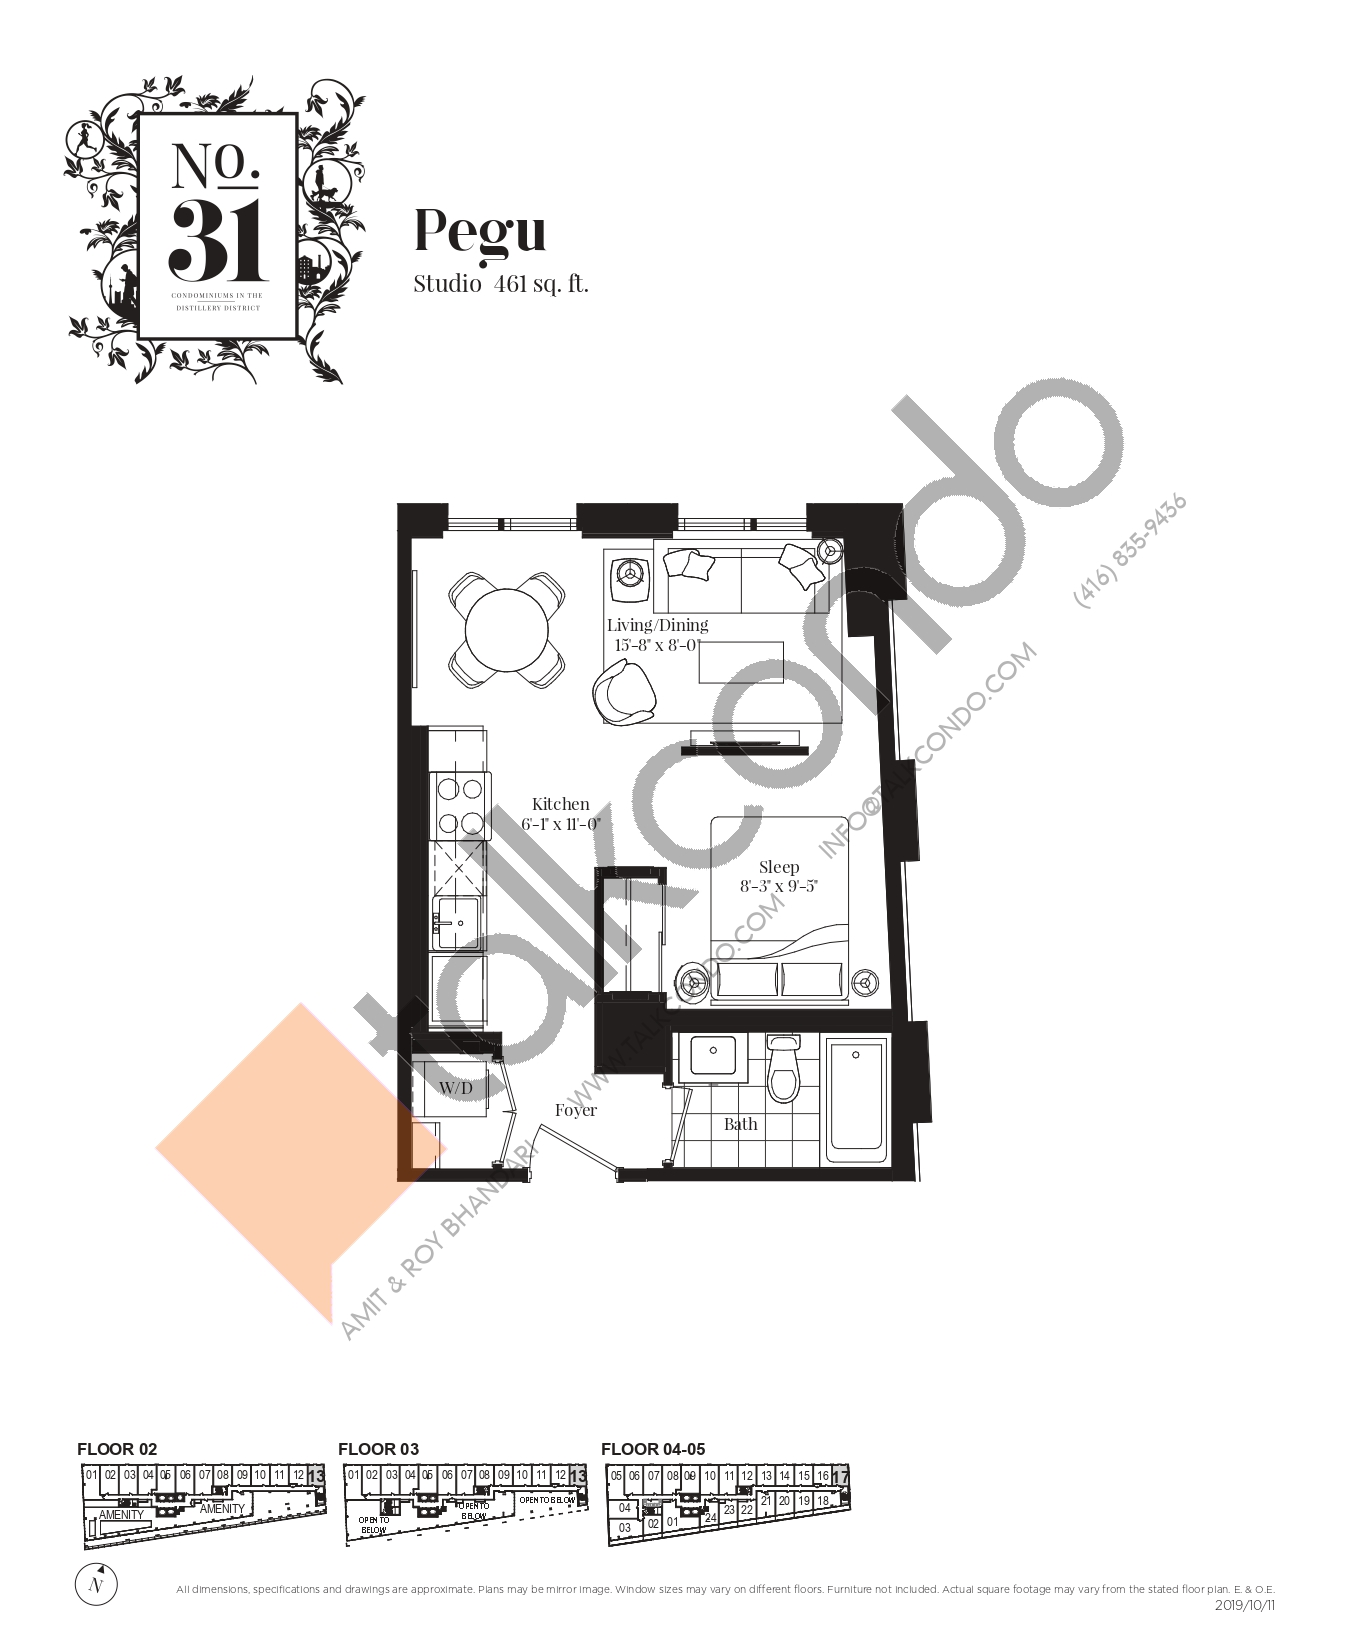 Pegu Floor Plan at No. 31 Condos - 461 sq.ft